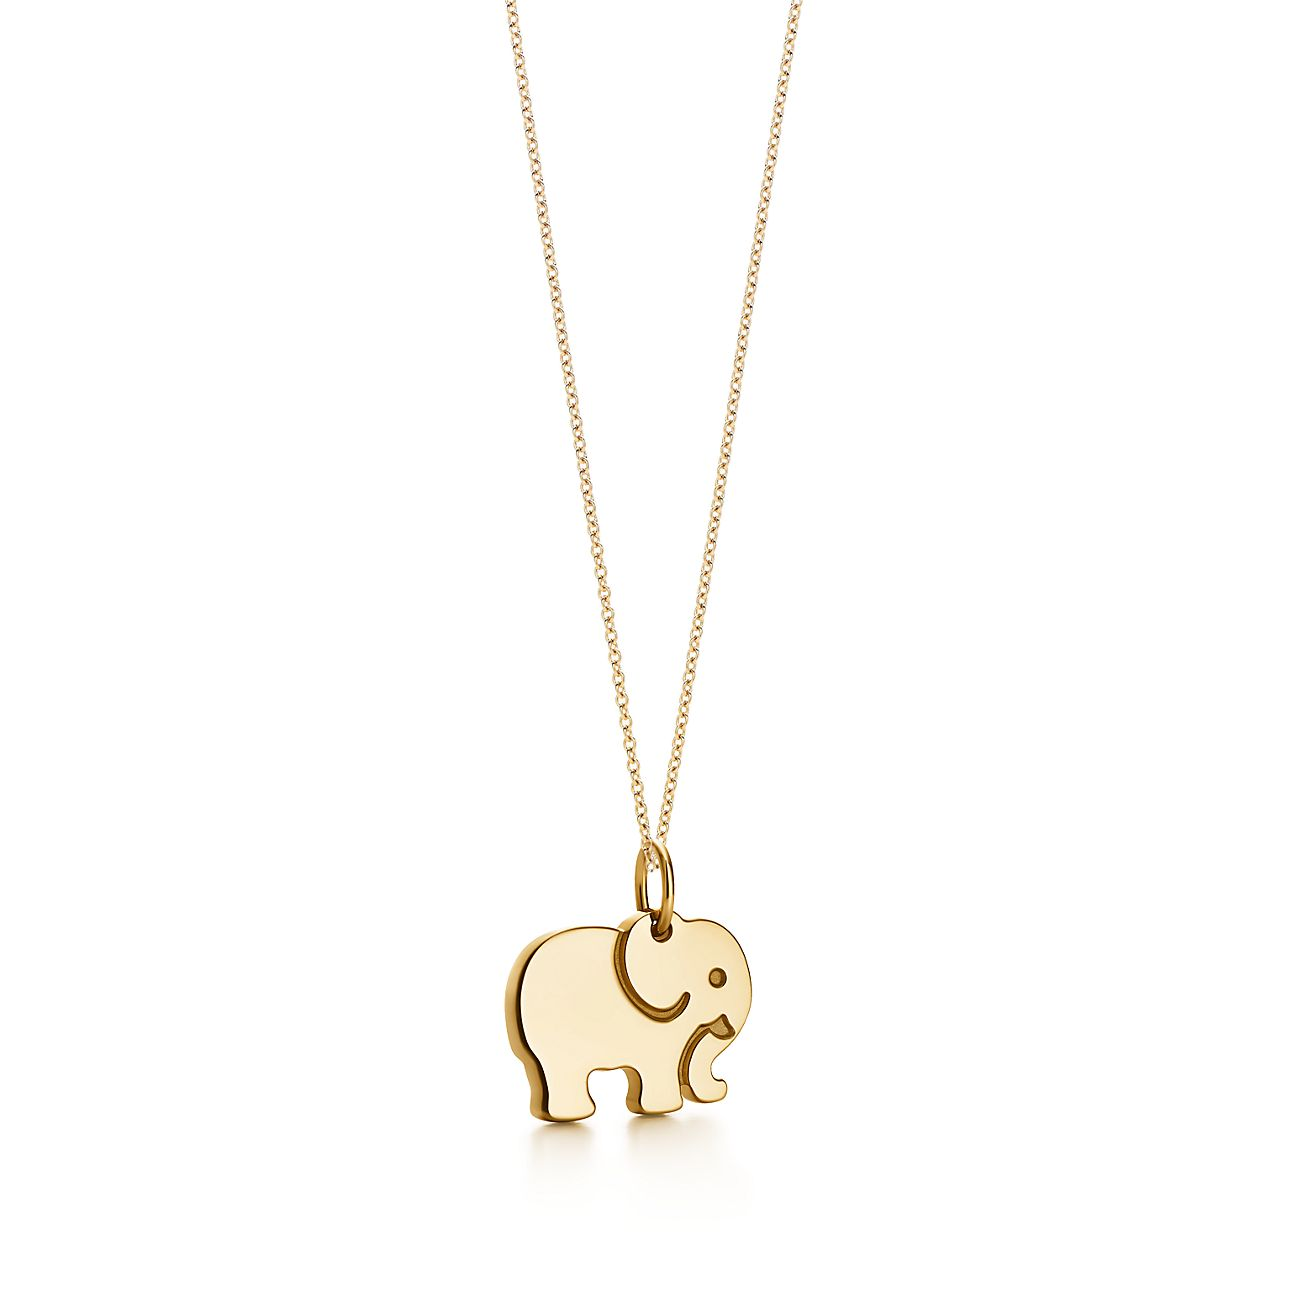 Tiffany charms elephant never forgets charm in 18k gold tiffany co tiffany charmselephant never forgets charm aloadofball Gallery